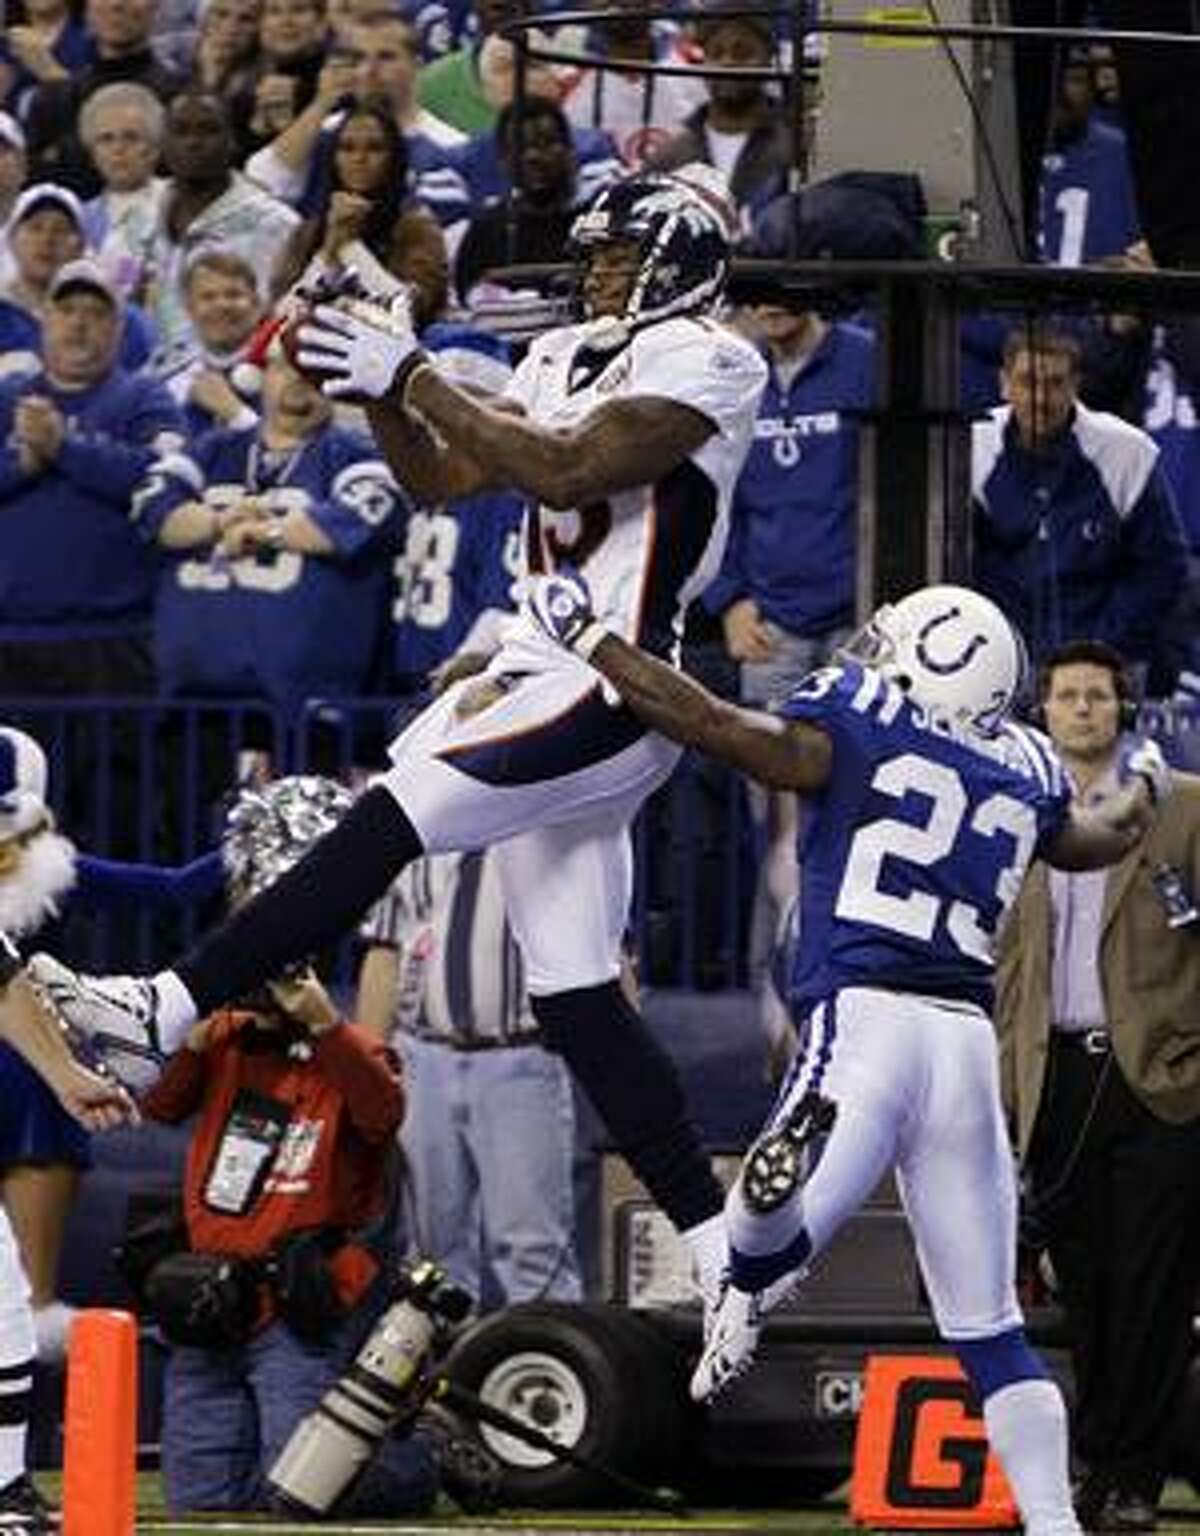 FILE - This Dec. 13, 2009, file photo, shows Denver Broncos wide receiver Brandon Marshall, left, catching a pass over Indianapolis Colts safety Tim Jennings for a touchdown in the fourth quarter of an NFL football game in Indianapolis. A person familiar with the deal says the Denver Broncos are trading Pro Bowl wide receiver Brandon Marshall to the Miami Dolphins for a pair of second-round draft picks. Marshall will fly to Miami on Wednesday, April 14, 2010, for a physical, said the person, who spoke on condition of anonymity because the teams hadn't announced the deal. (AP Photo/Michael Conroy)